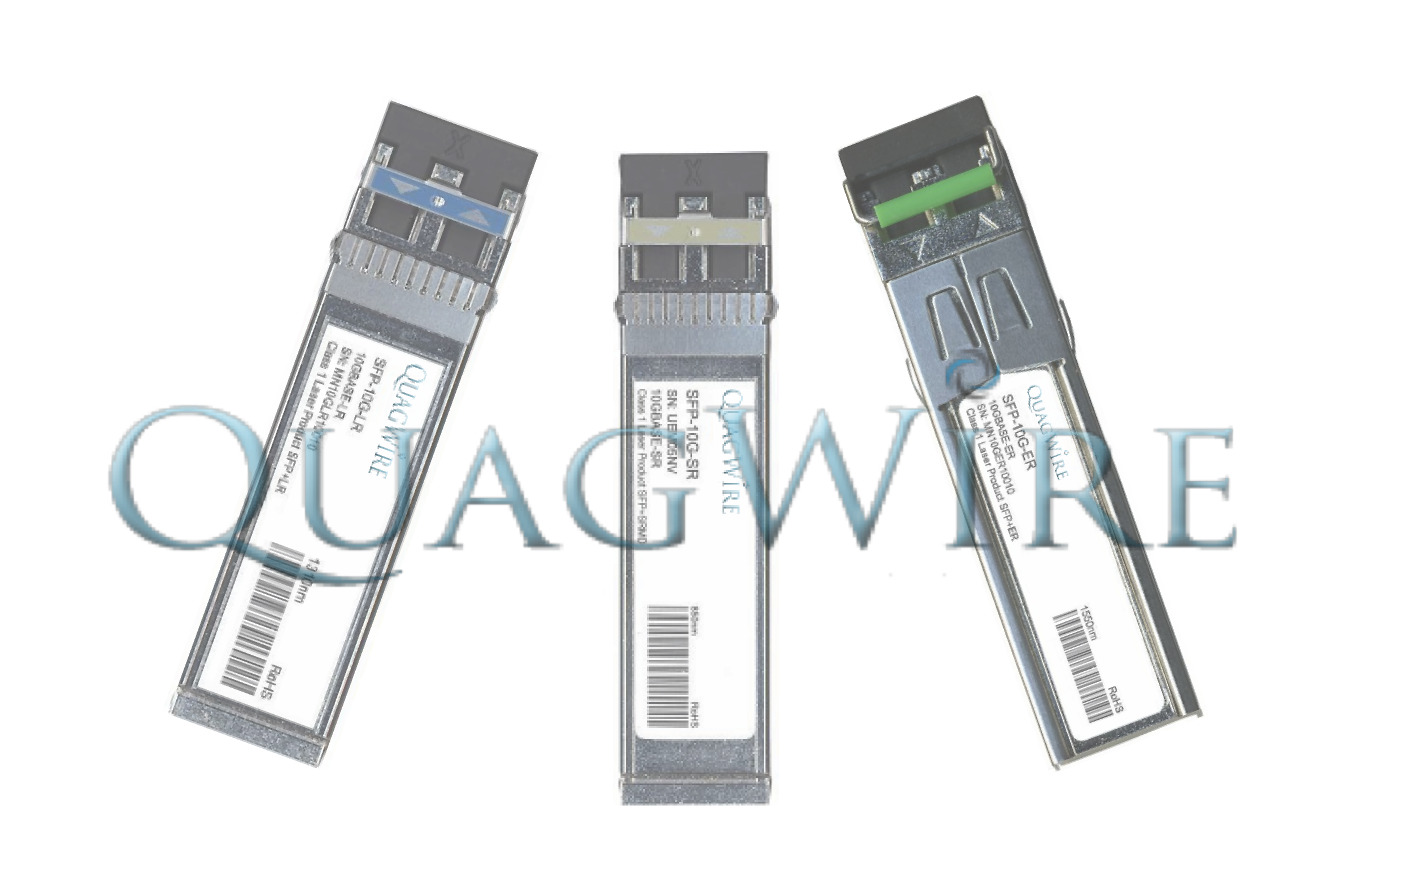 57-0000075-01 – Brocade Compatible SFP+ Transceiver